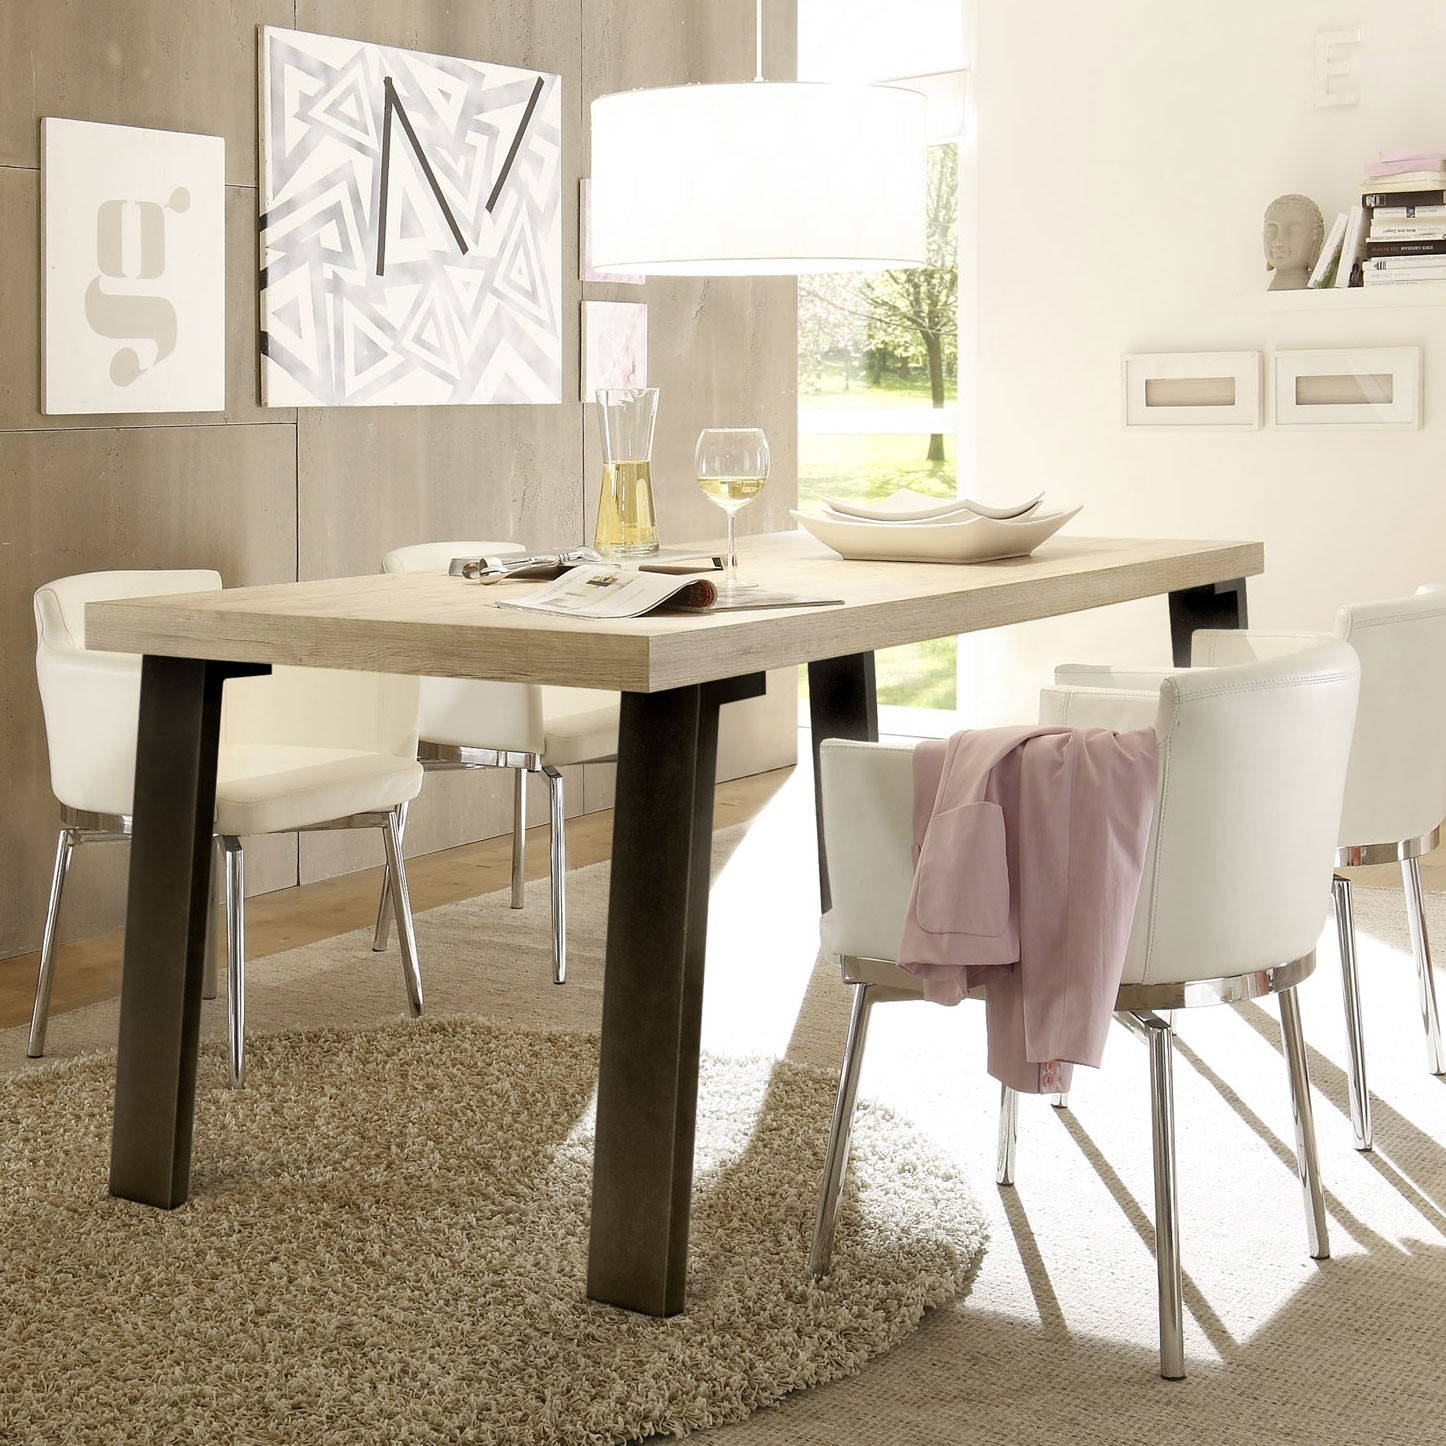 Table a manger en bois moderne - Table a manger en bois ...